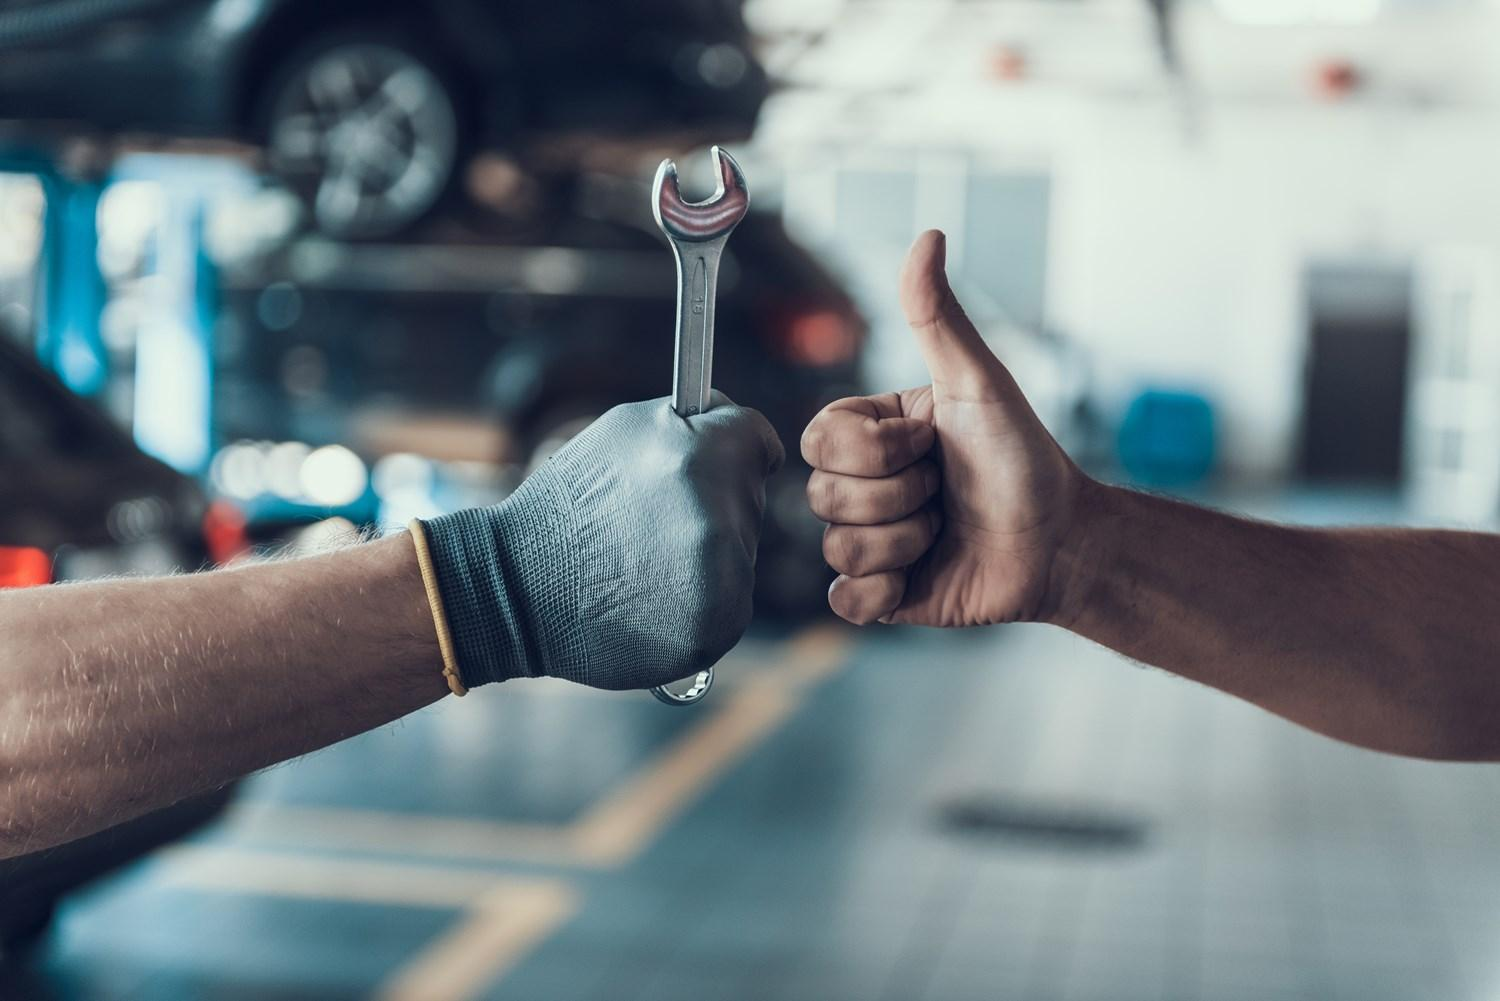 Man holding a wrench and a thumbs up